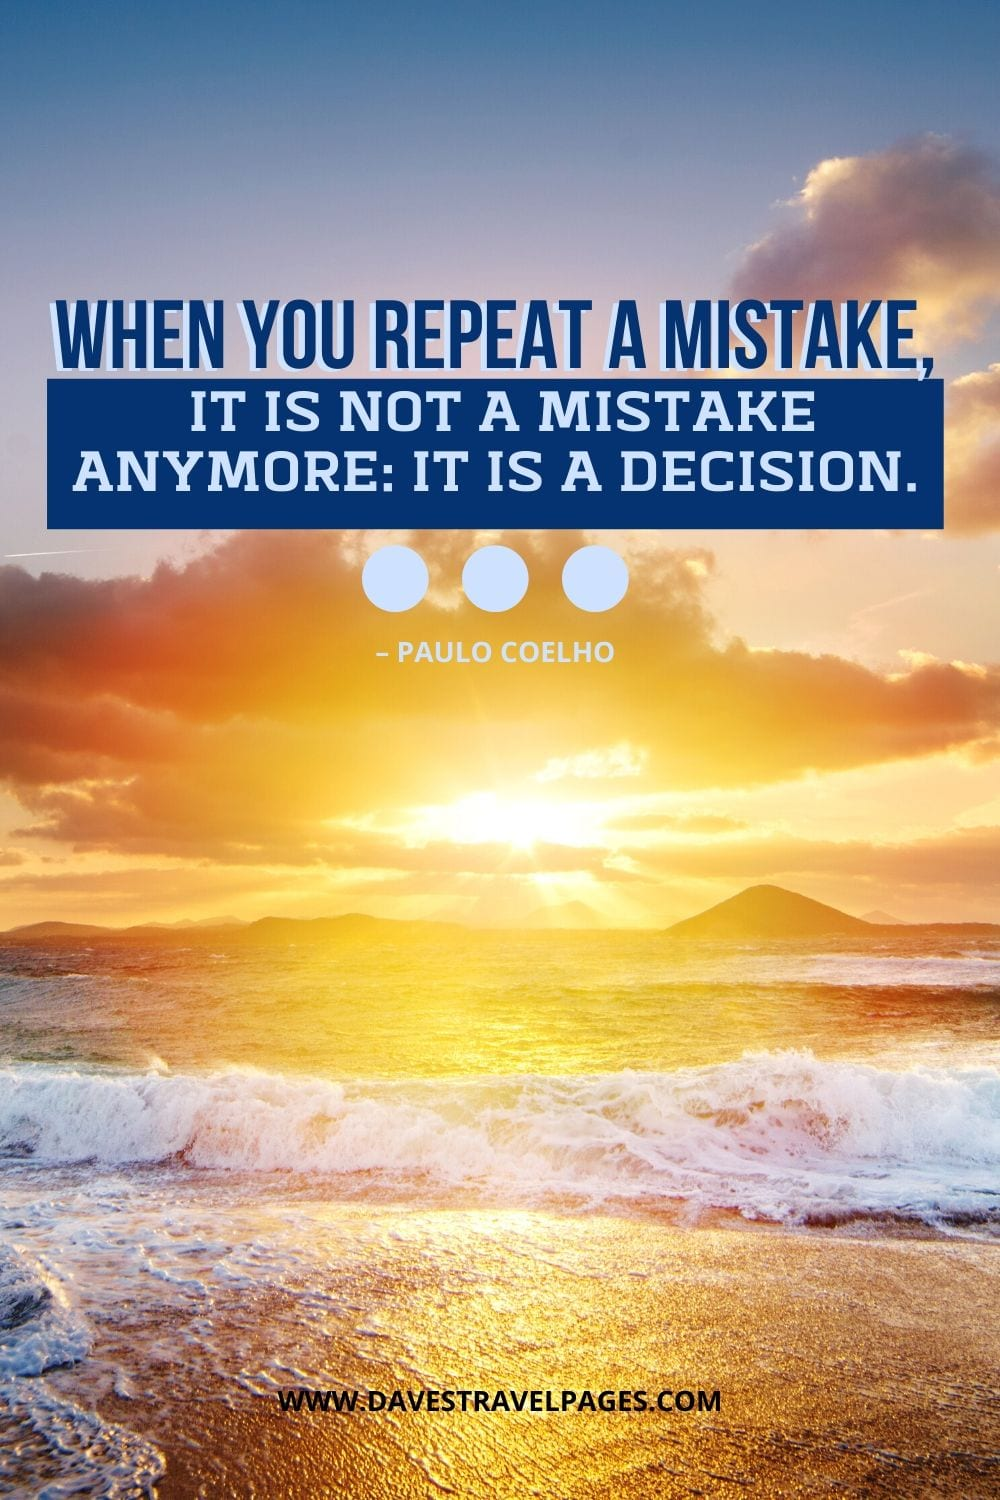 "Quotes by Paulo Coelho: ""When you repeat a mistake, it is not a mistake anymore: it is a decision."""